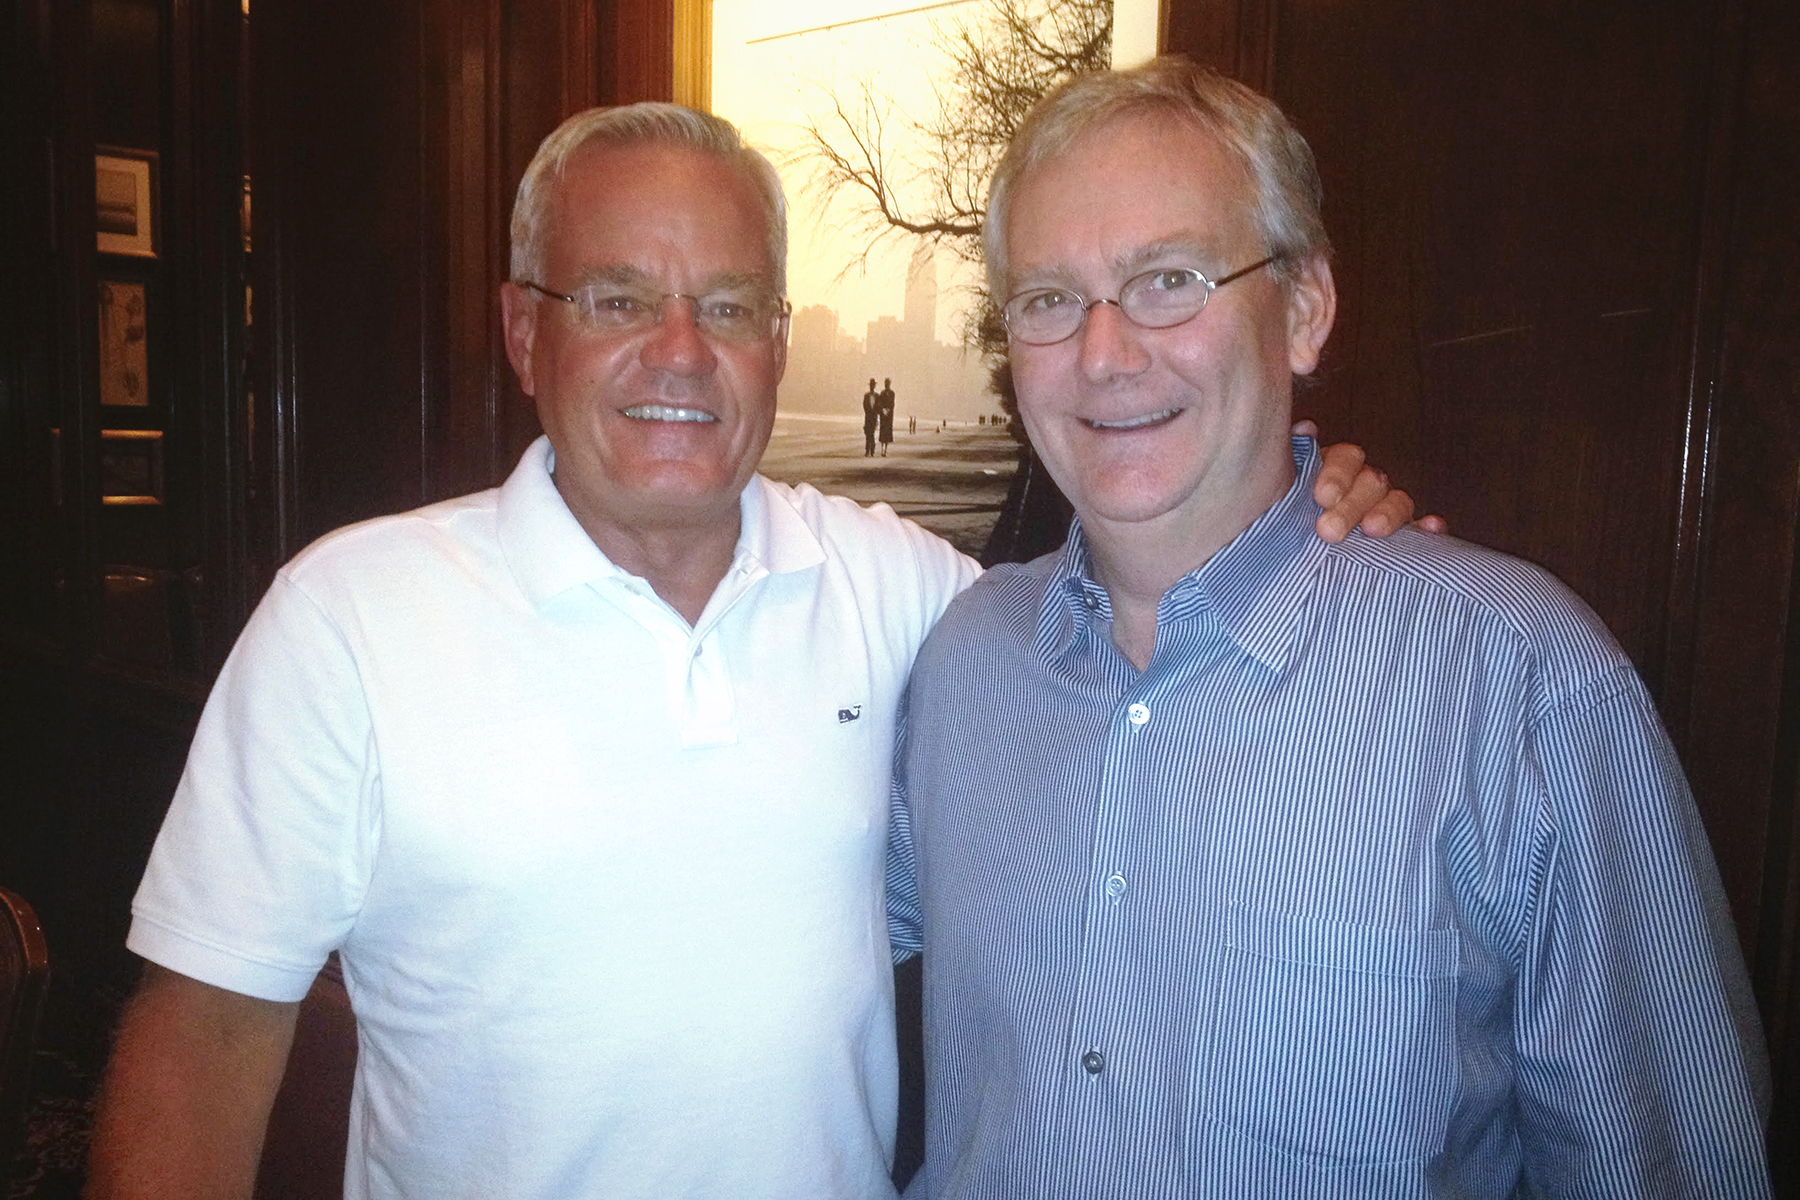 MG and Hybels.jpg